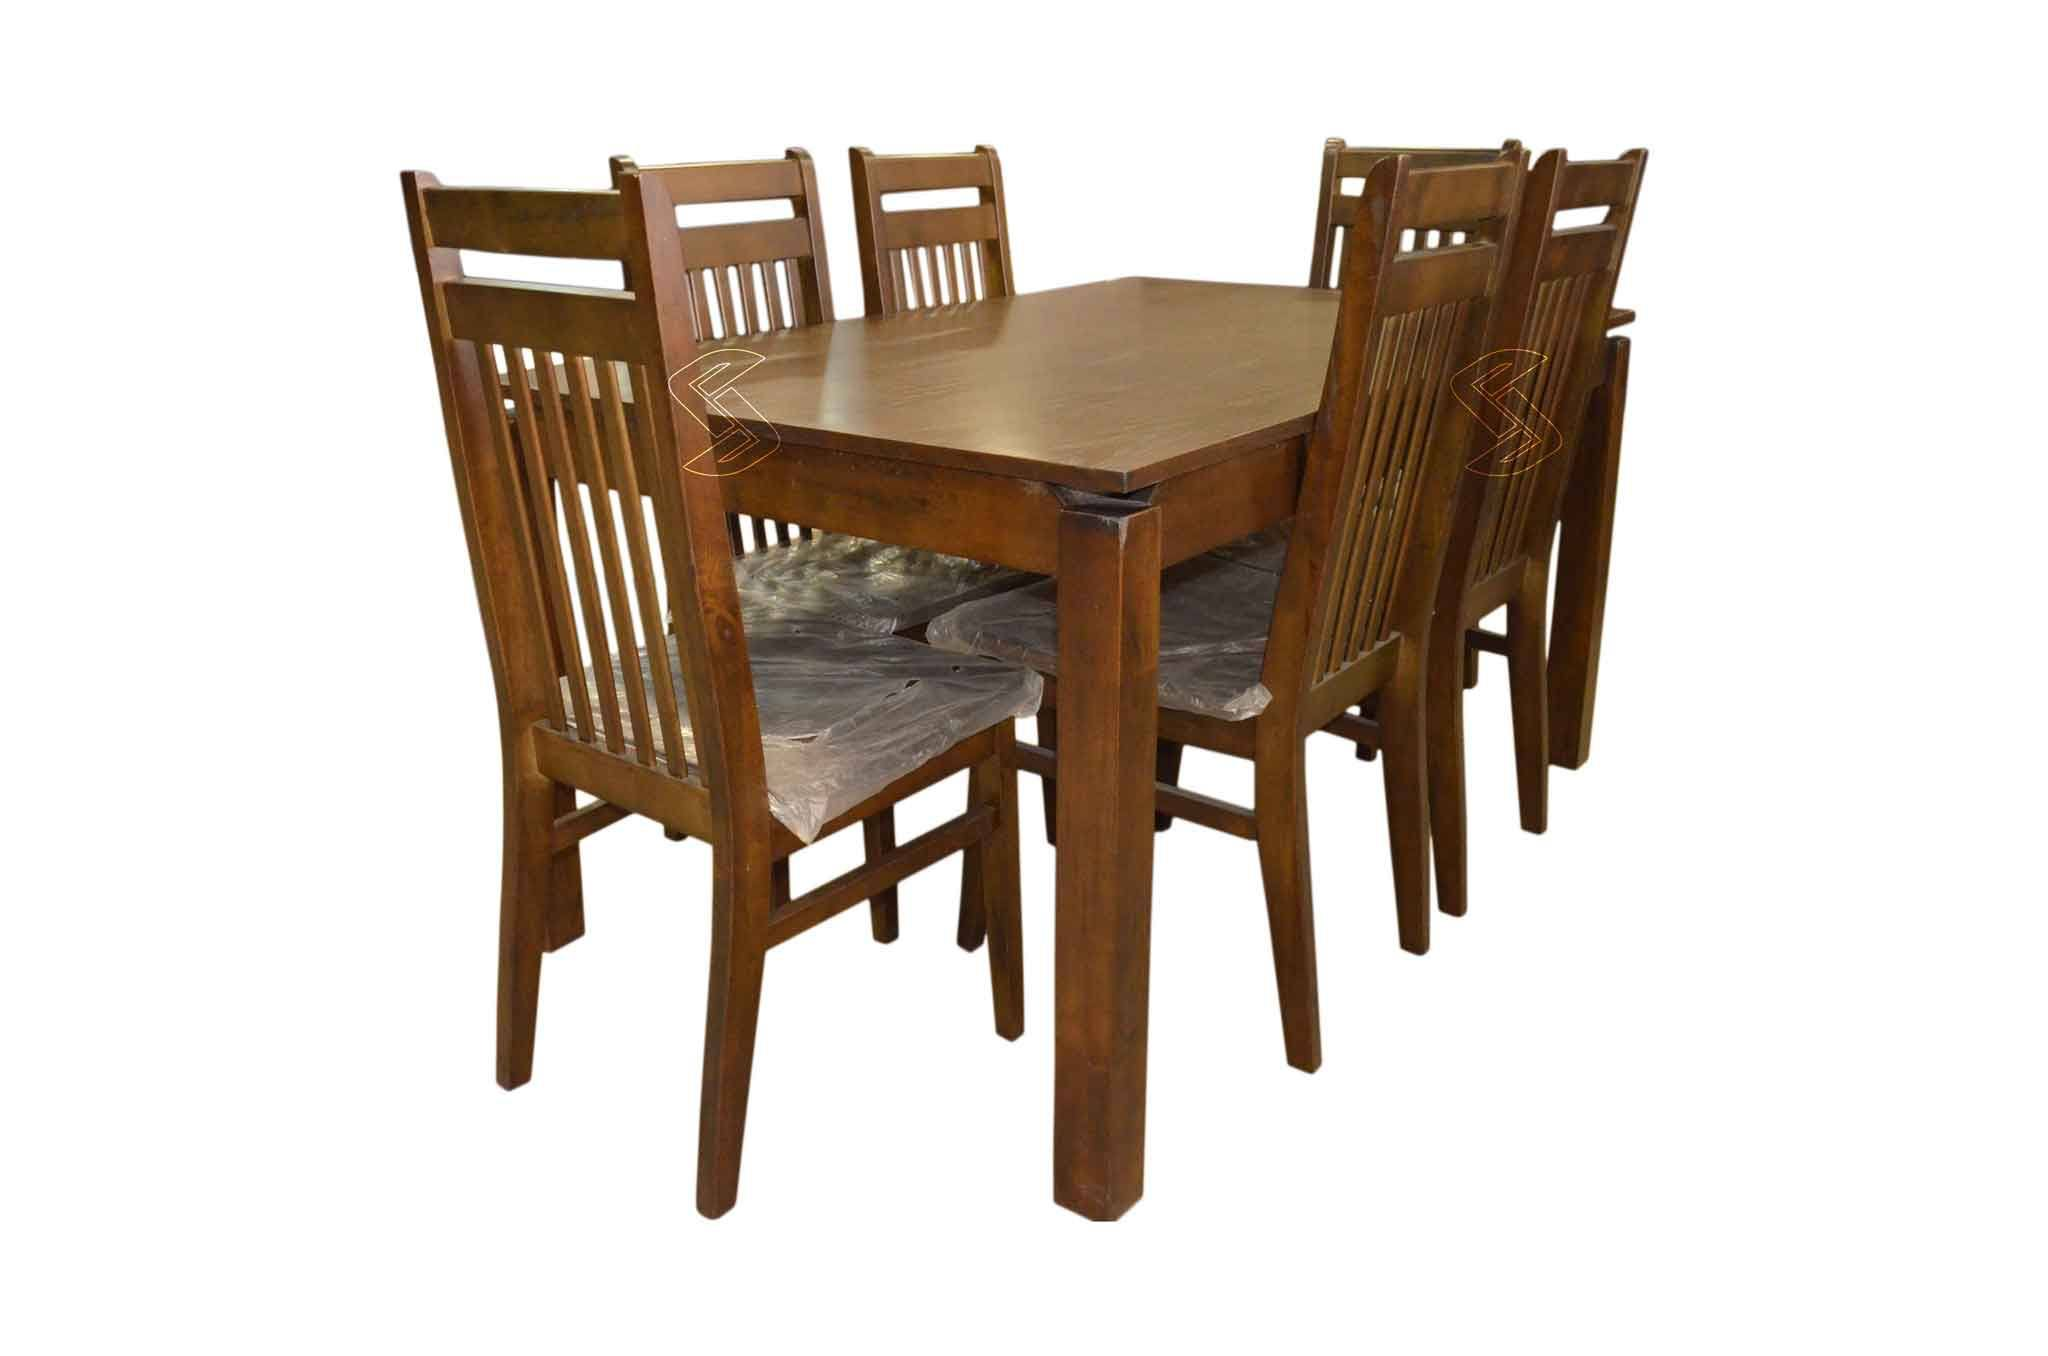 Taso 6 seater dining table set natural finish sanfurn for Dining table set 6 seater